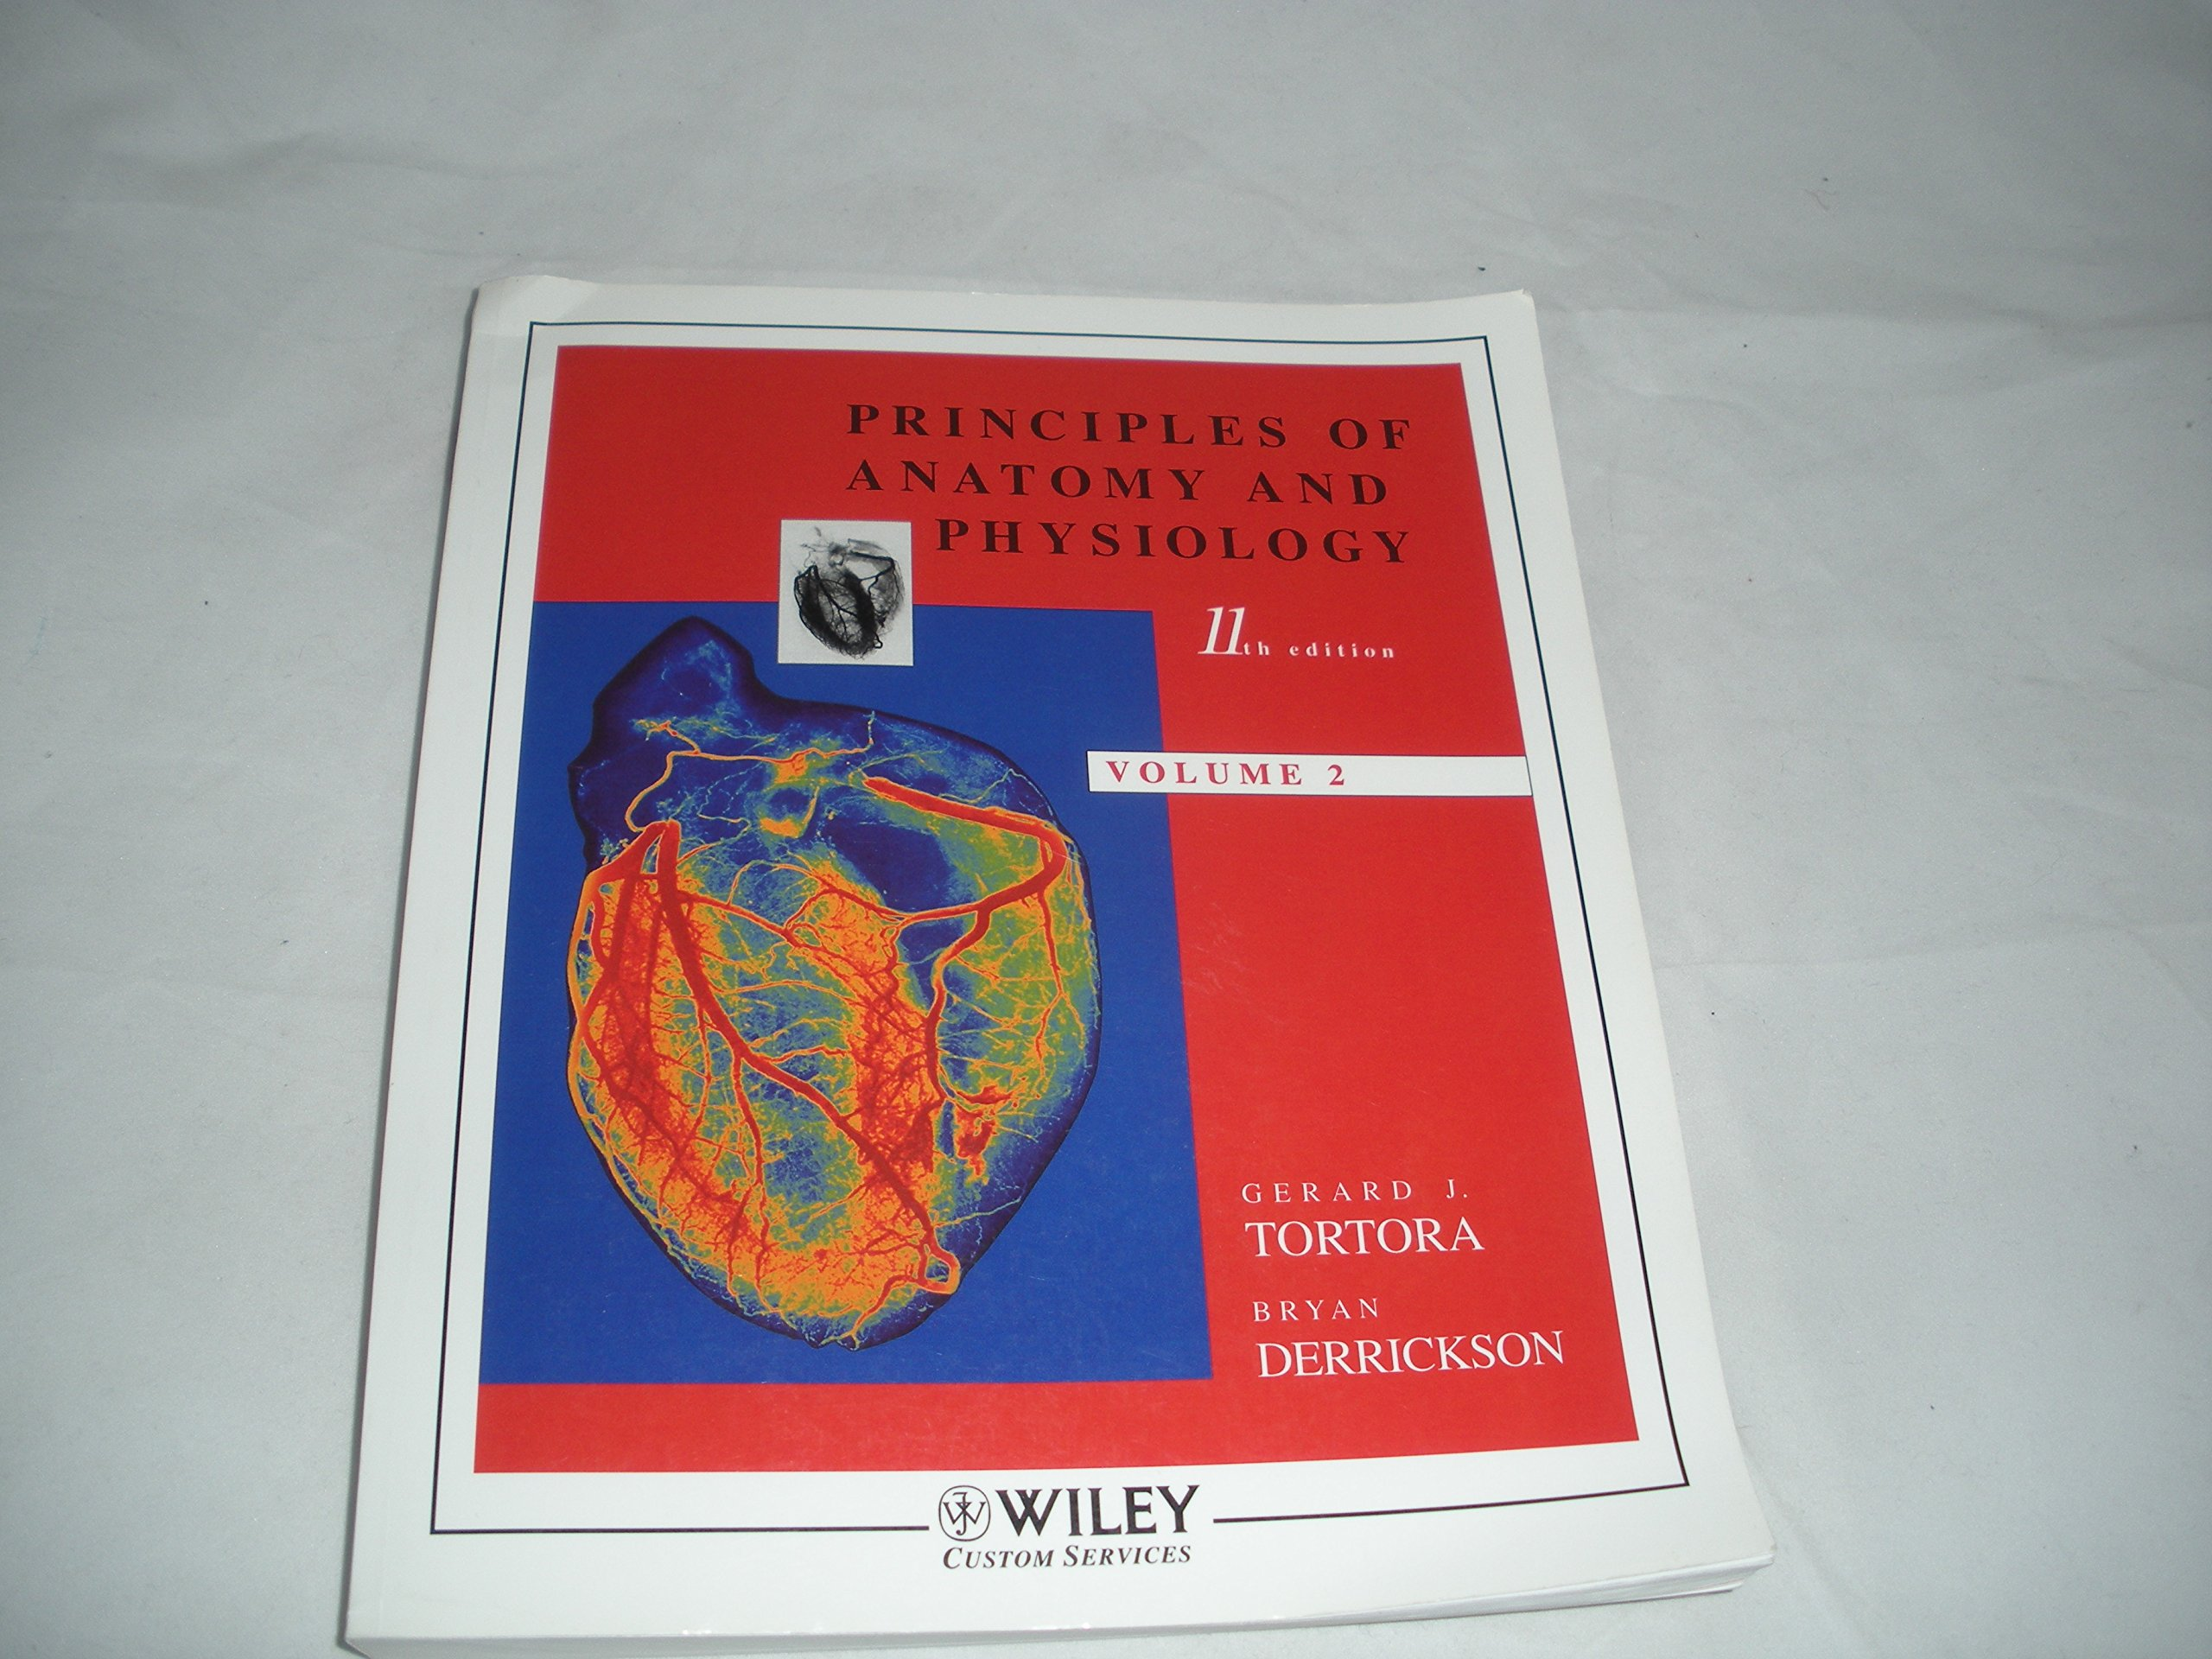 Principles of Anatomy and Physiology, Volume 2, 11th Edition ...